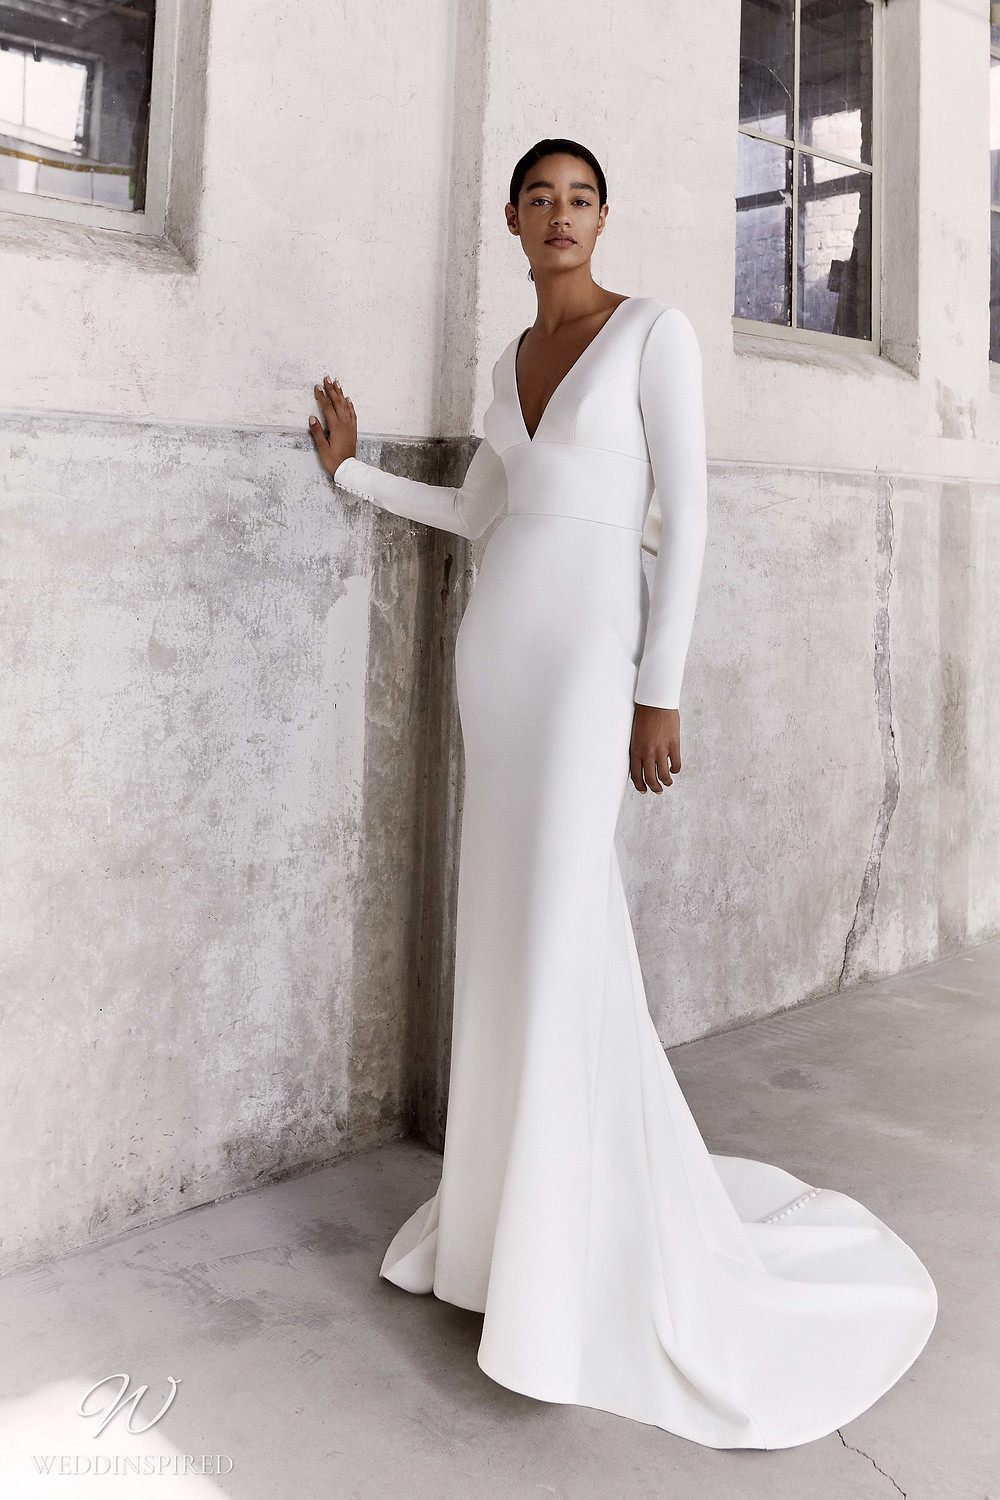 A Viktor & Rolf Fall/Winter 2021 simple mermaid wedding dress with long sleeves and a v neck